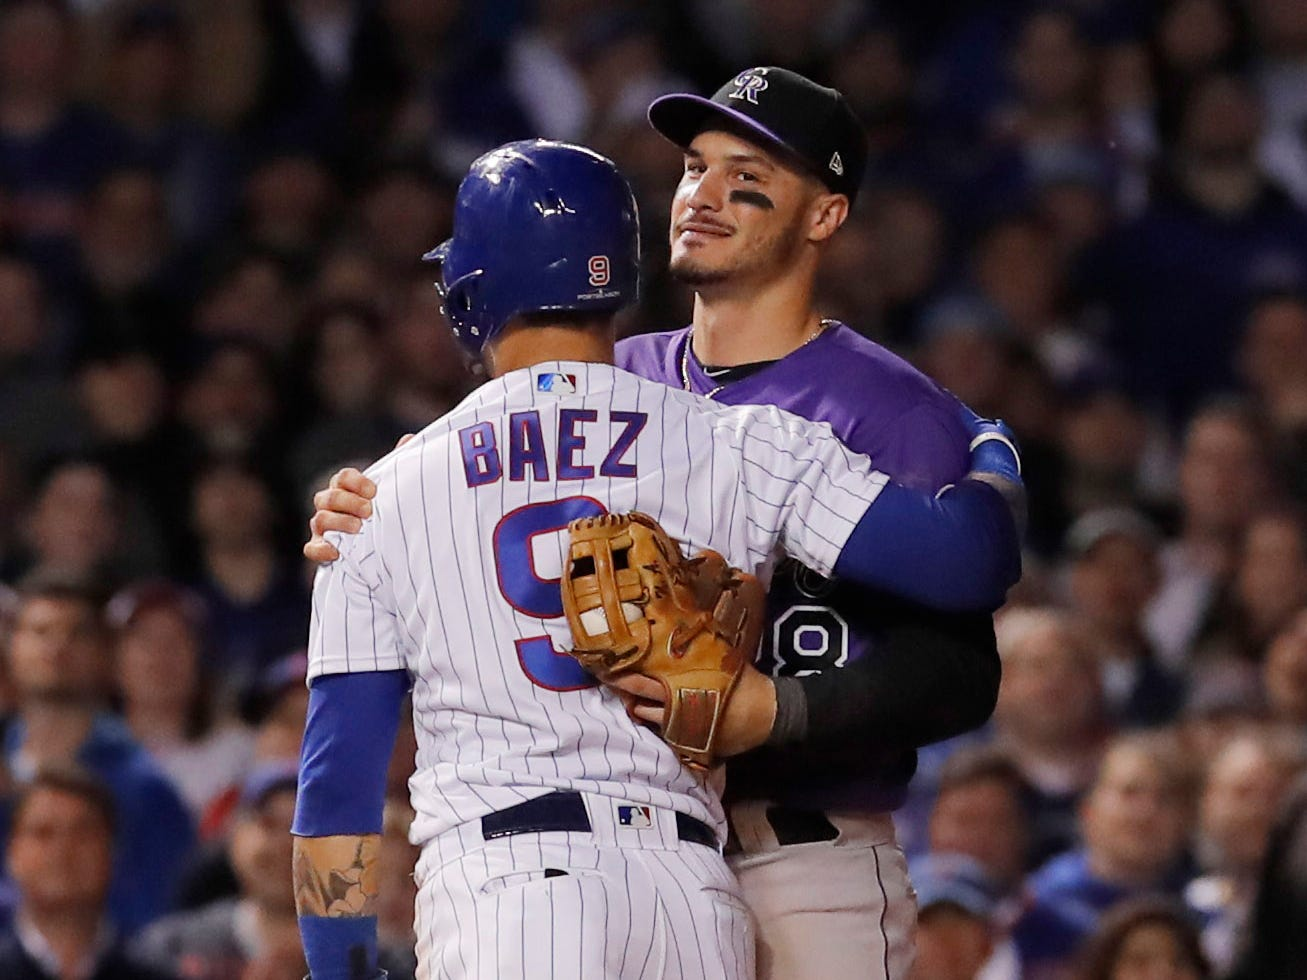 NL wild card: Cubs shortstop Javier Baez hugs Rockies third baseman Nolan Arenado after being tagged out in the 11th inning.